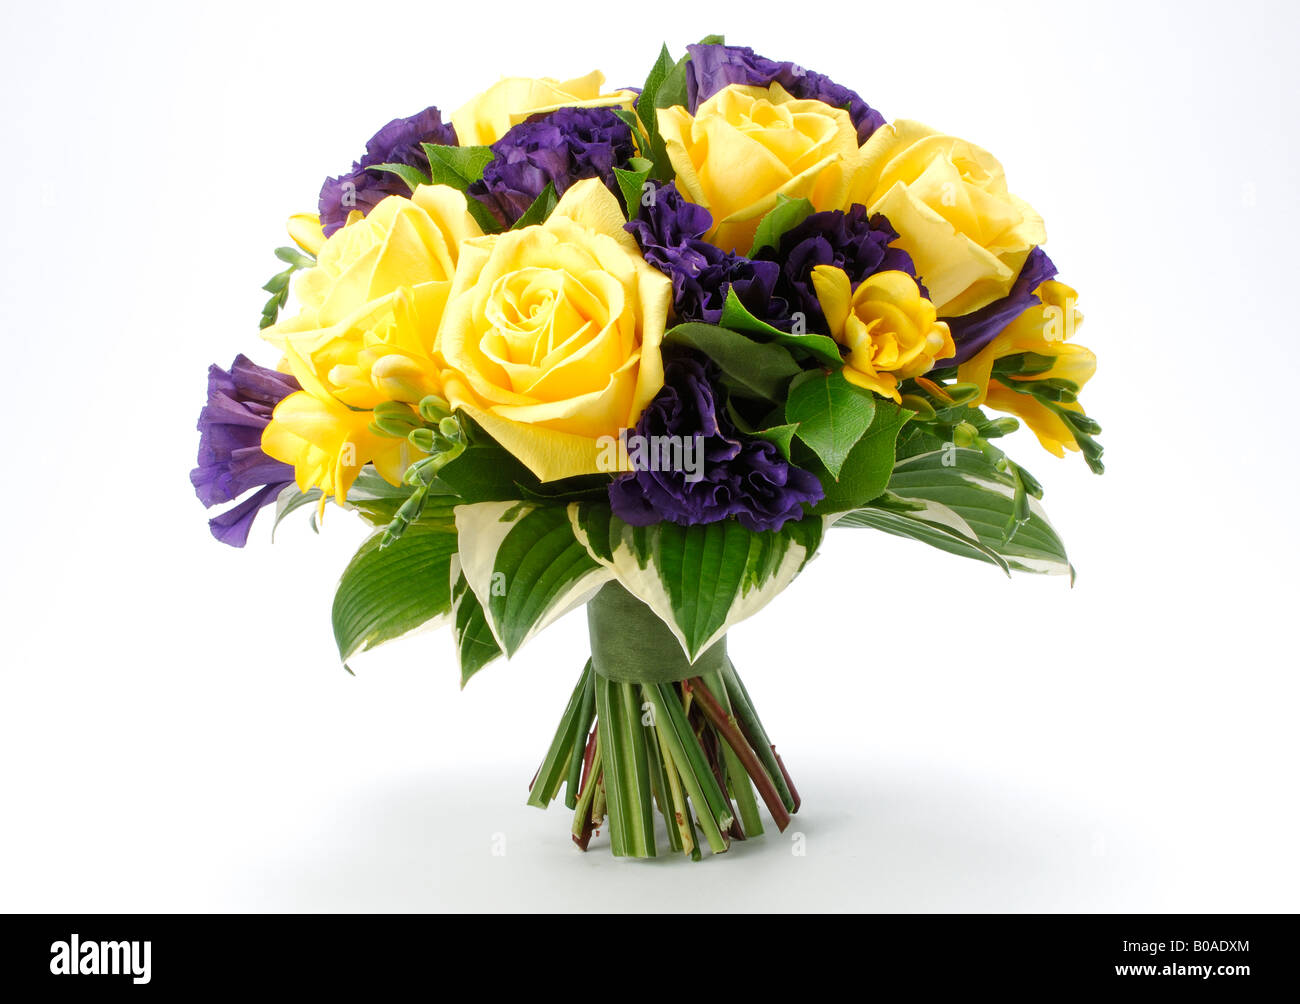 A Bouquet Of Arranged Flowers Yellow Roses Hybrid Tea Rose And